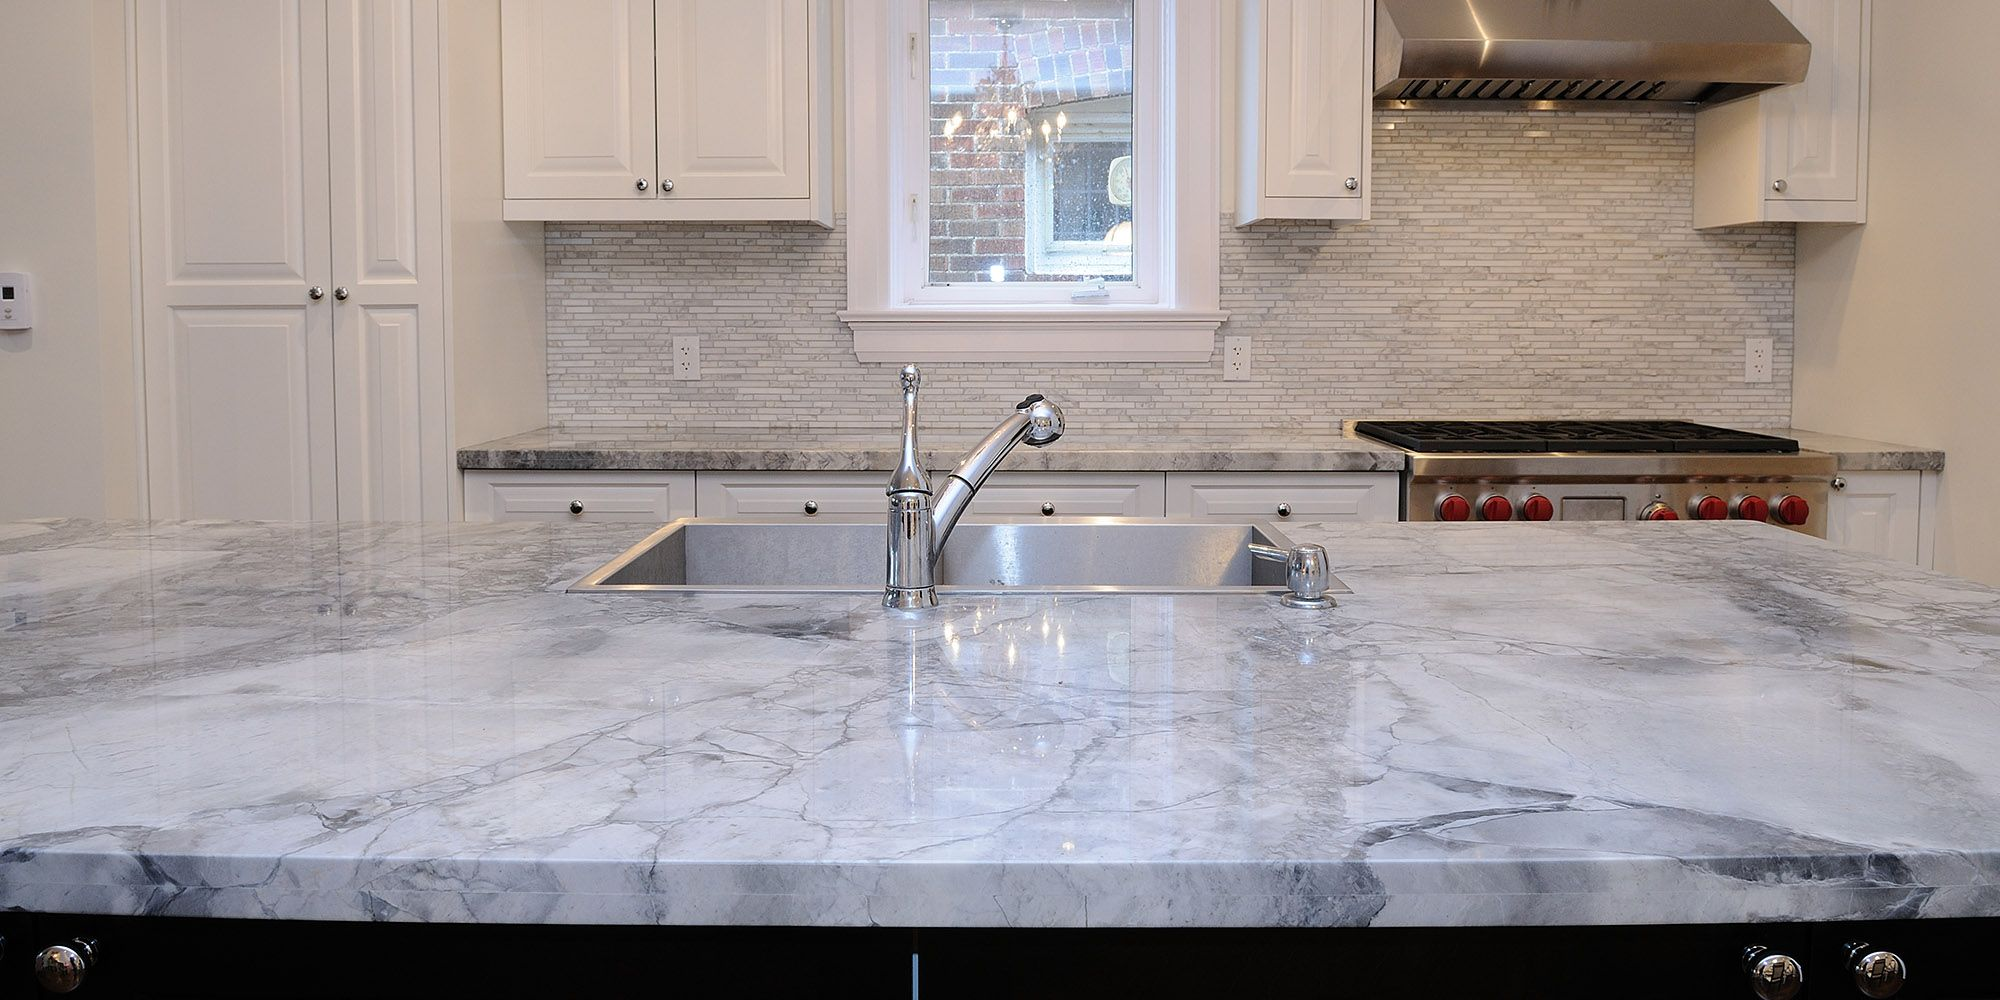 precut countertop countertops prices different quartz kitchen counter oak top counters types and options of